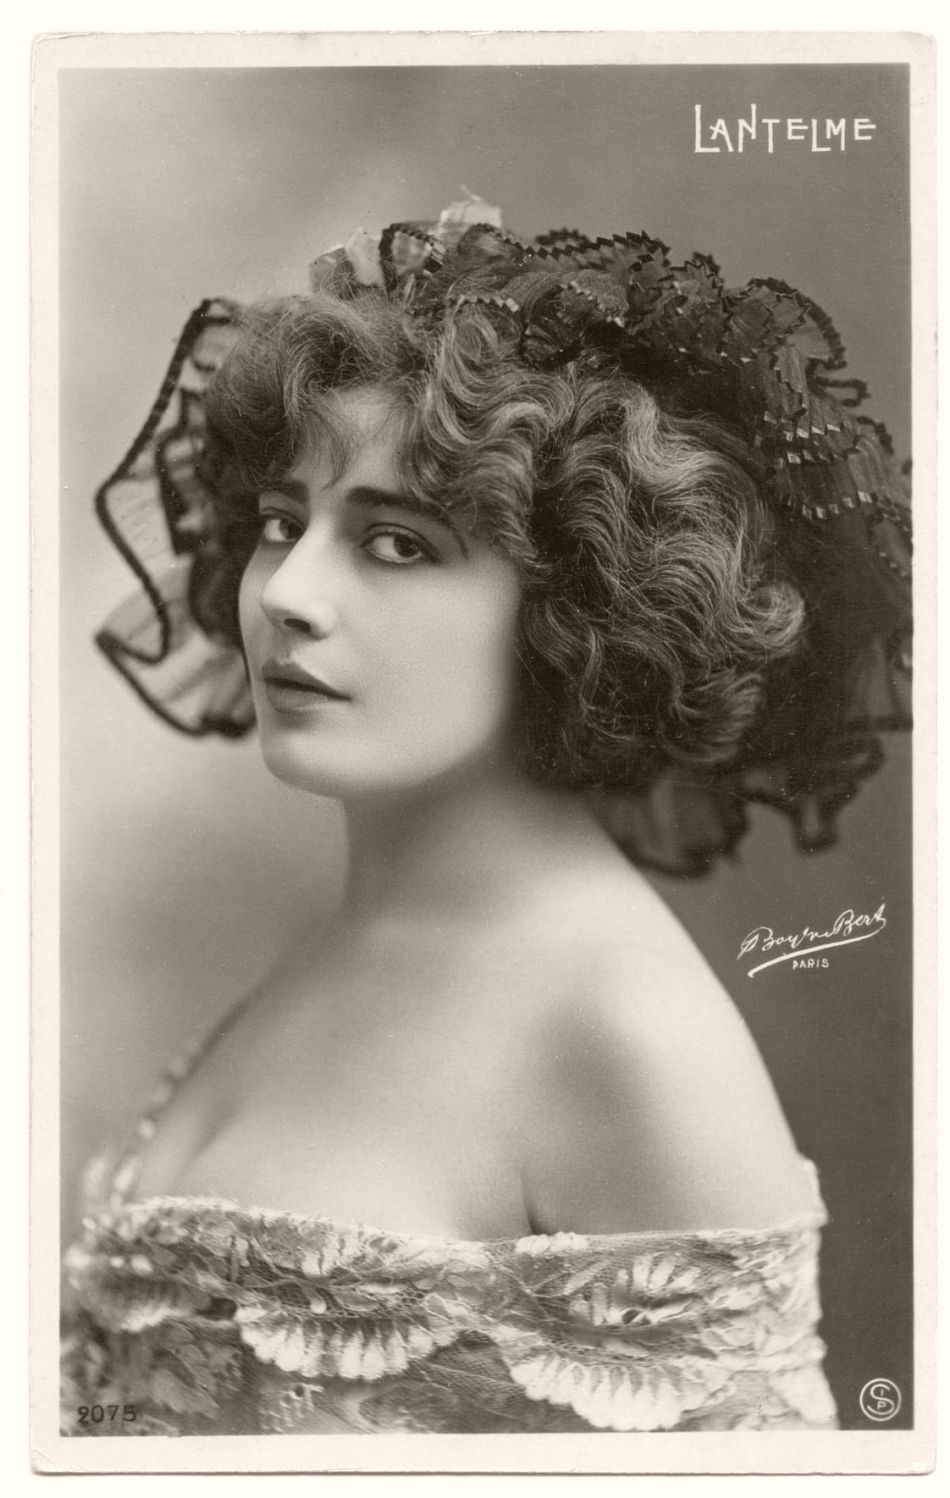 "Geneviève ""Ginette"" Lantelme (born Mathilde Hortense Claire Fossey, 1883) was a French stage actress, socialite, fashion icon, and courtesan. Considered by her contemporaries to be one of the most beautiful women of the Belle Epoque and bearing a resemblance to American actress Ethel Barrymore, she is remembered for the mysterious circumstances of her death: on the night of July 24/25, 1911, she fell from the yacht of her husband, Alfred Edwards."